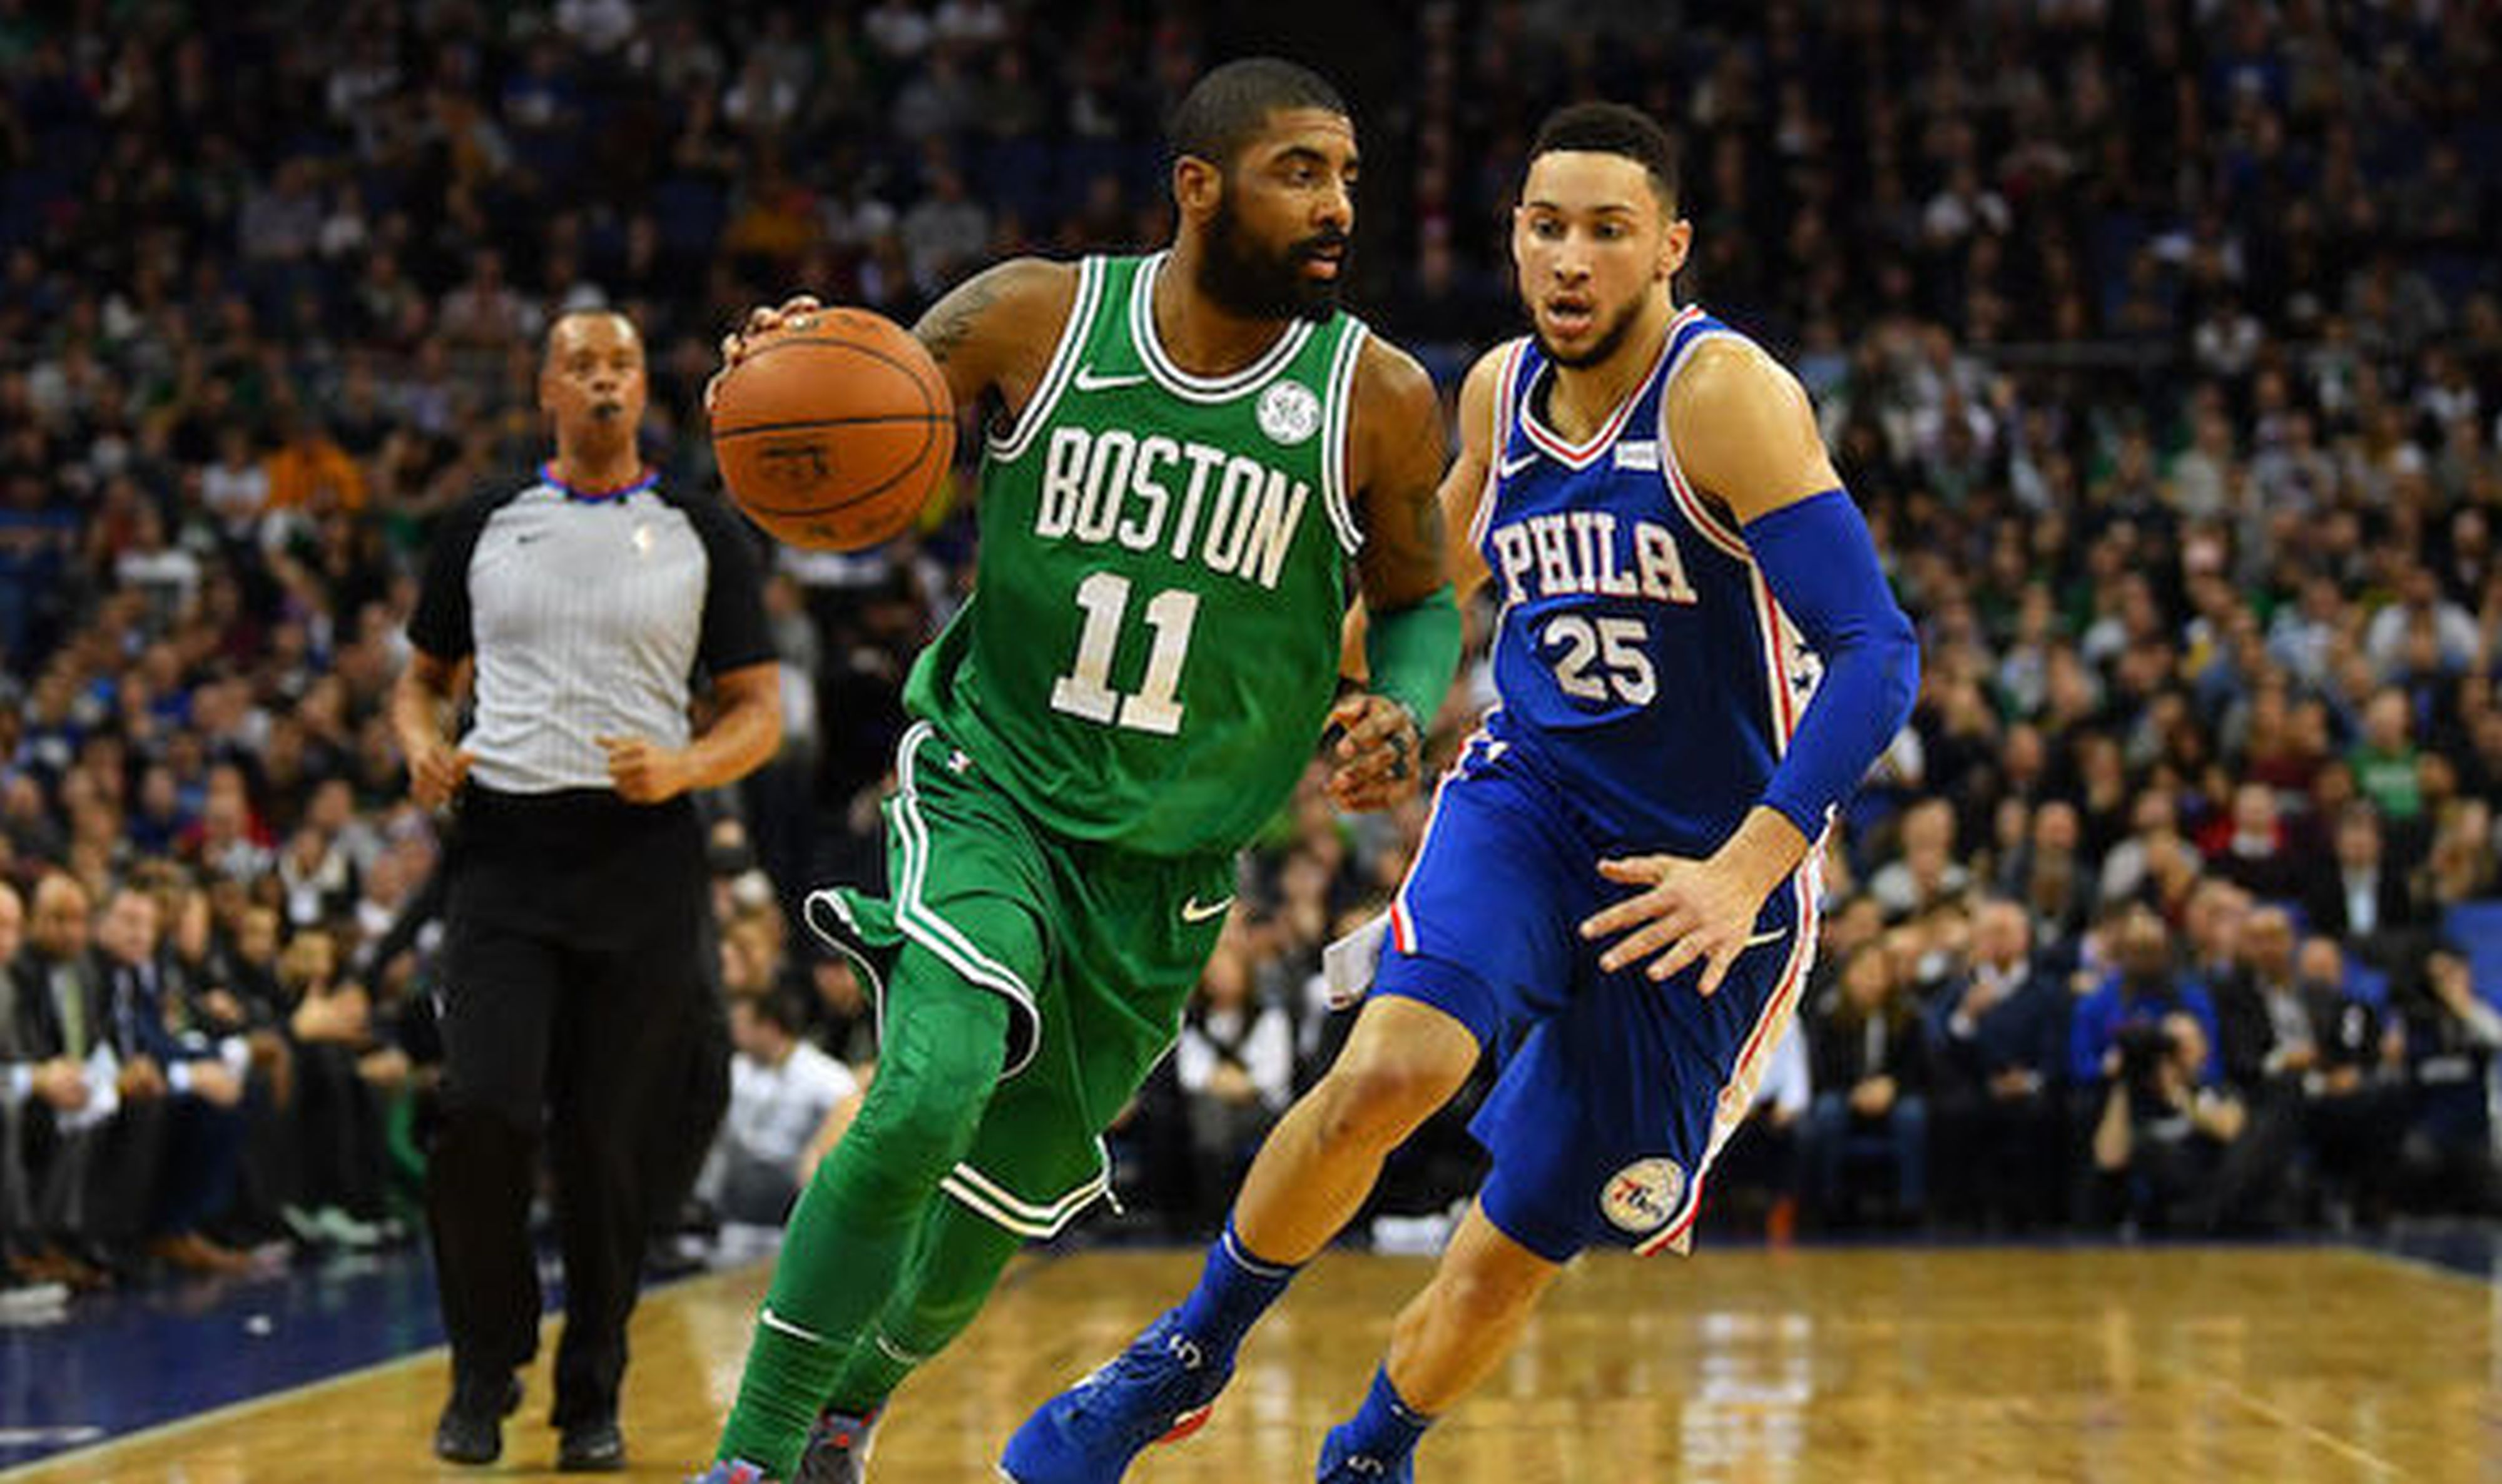 The-boston-celtics-came-back-from-22-points-down-903567